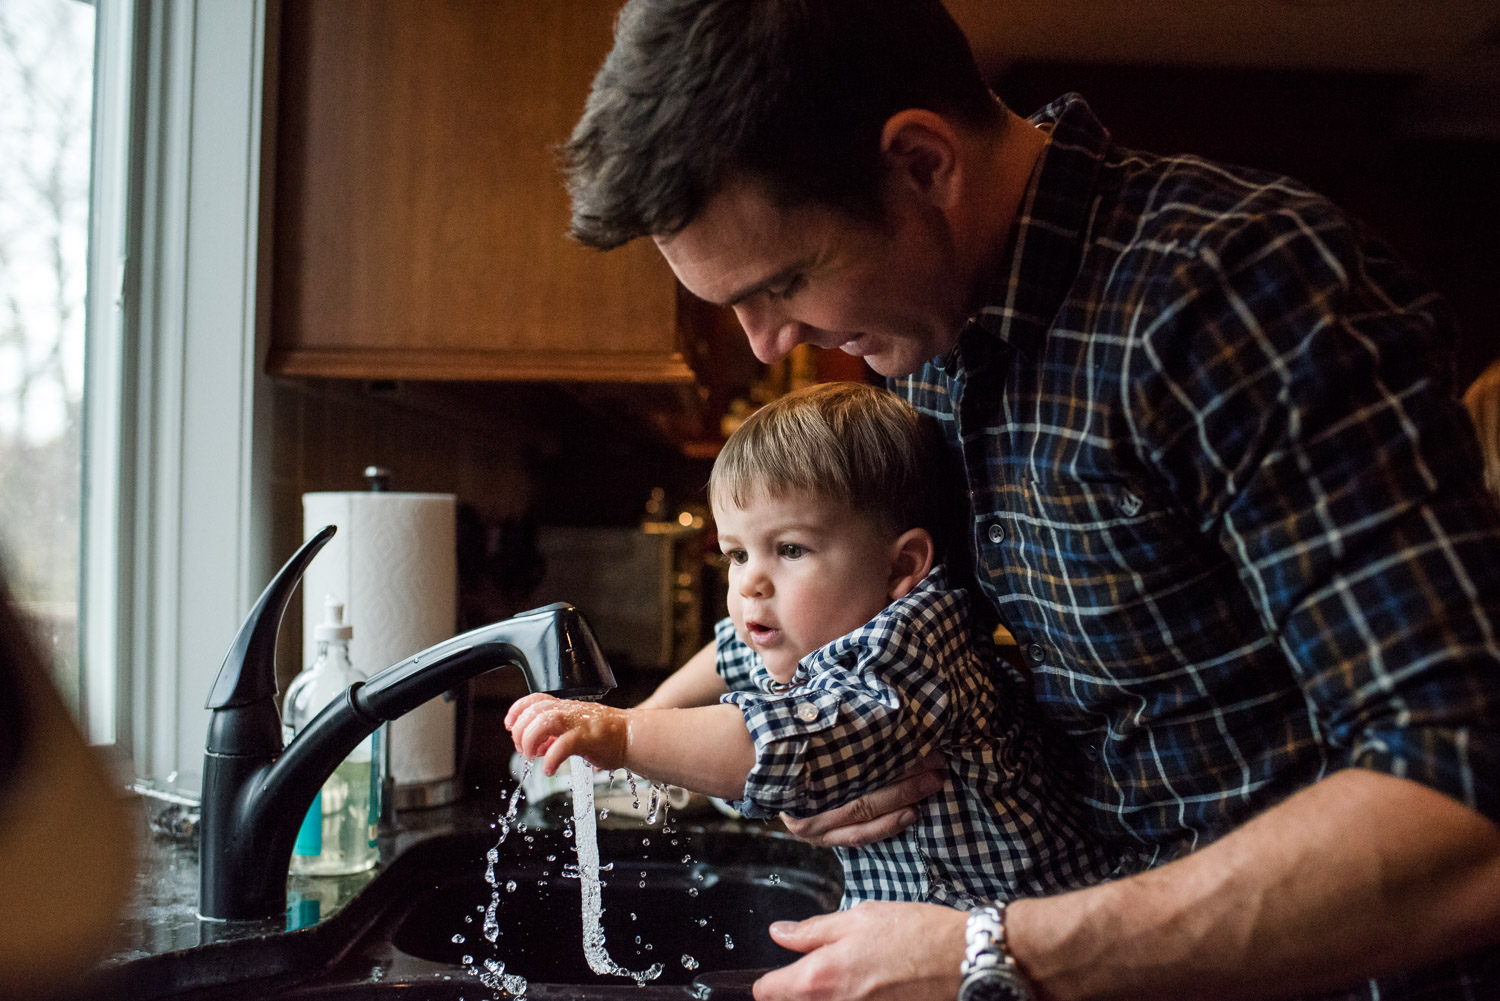 A father helps his baby son wash his hands in the kitchen sink.